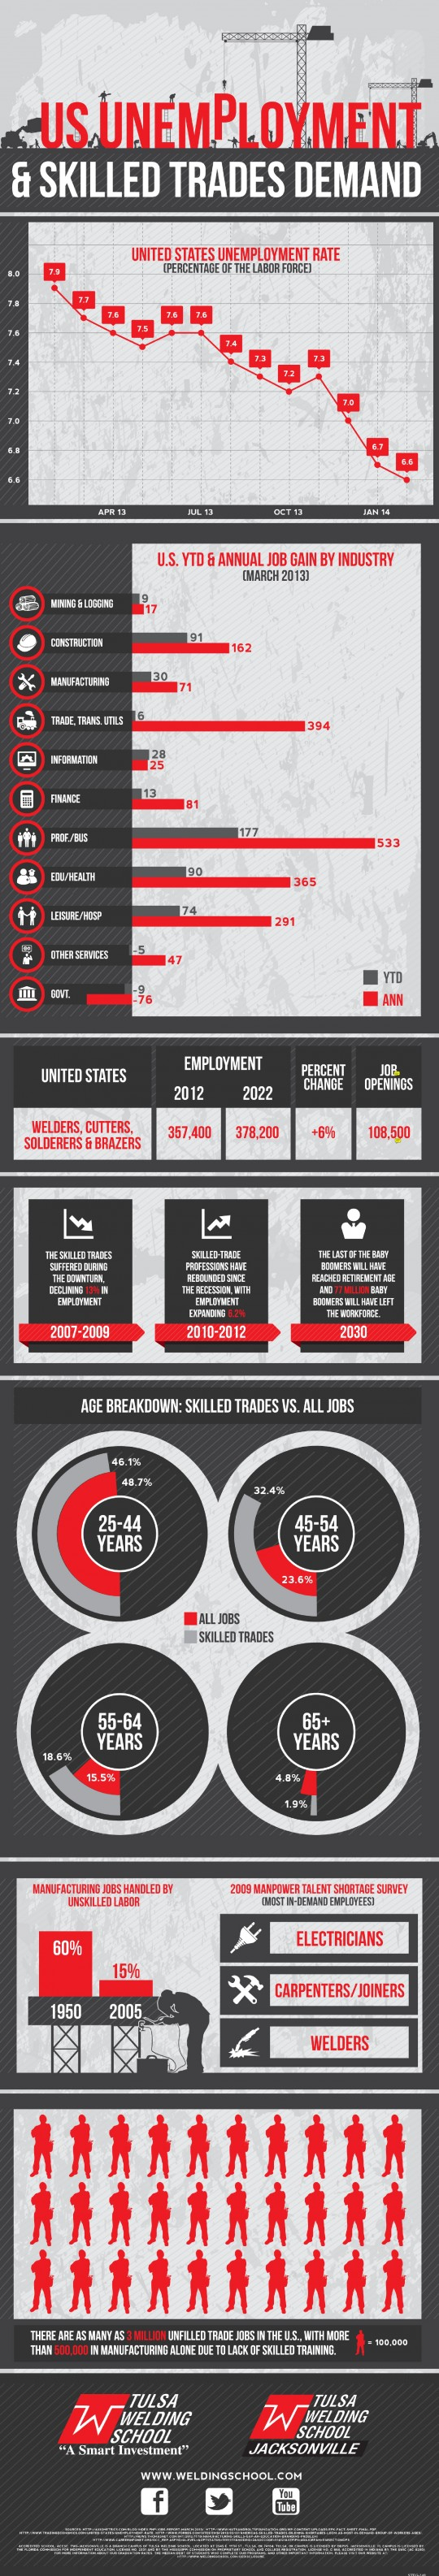 US Unemployment & Skilled Trades Demand